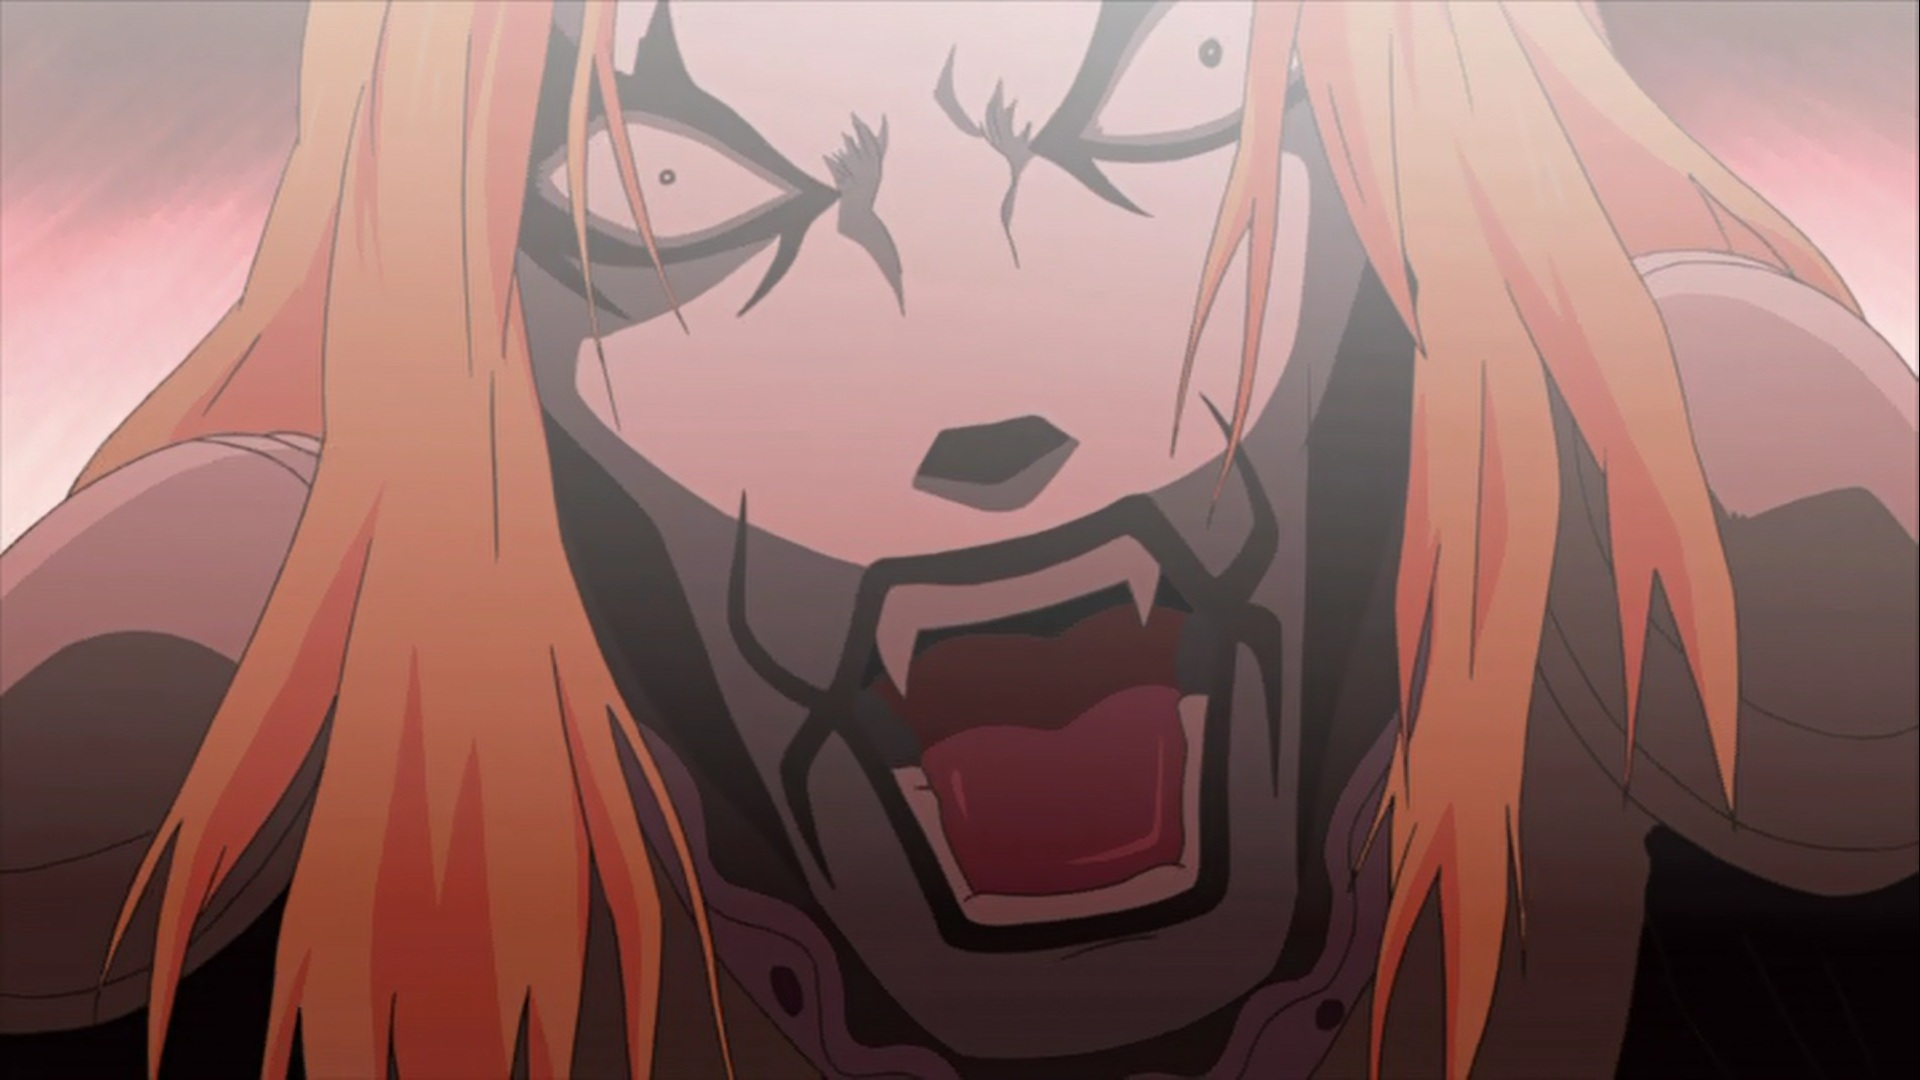 Krauser screaming.